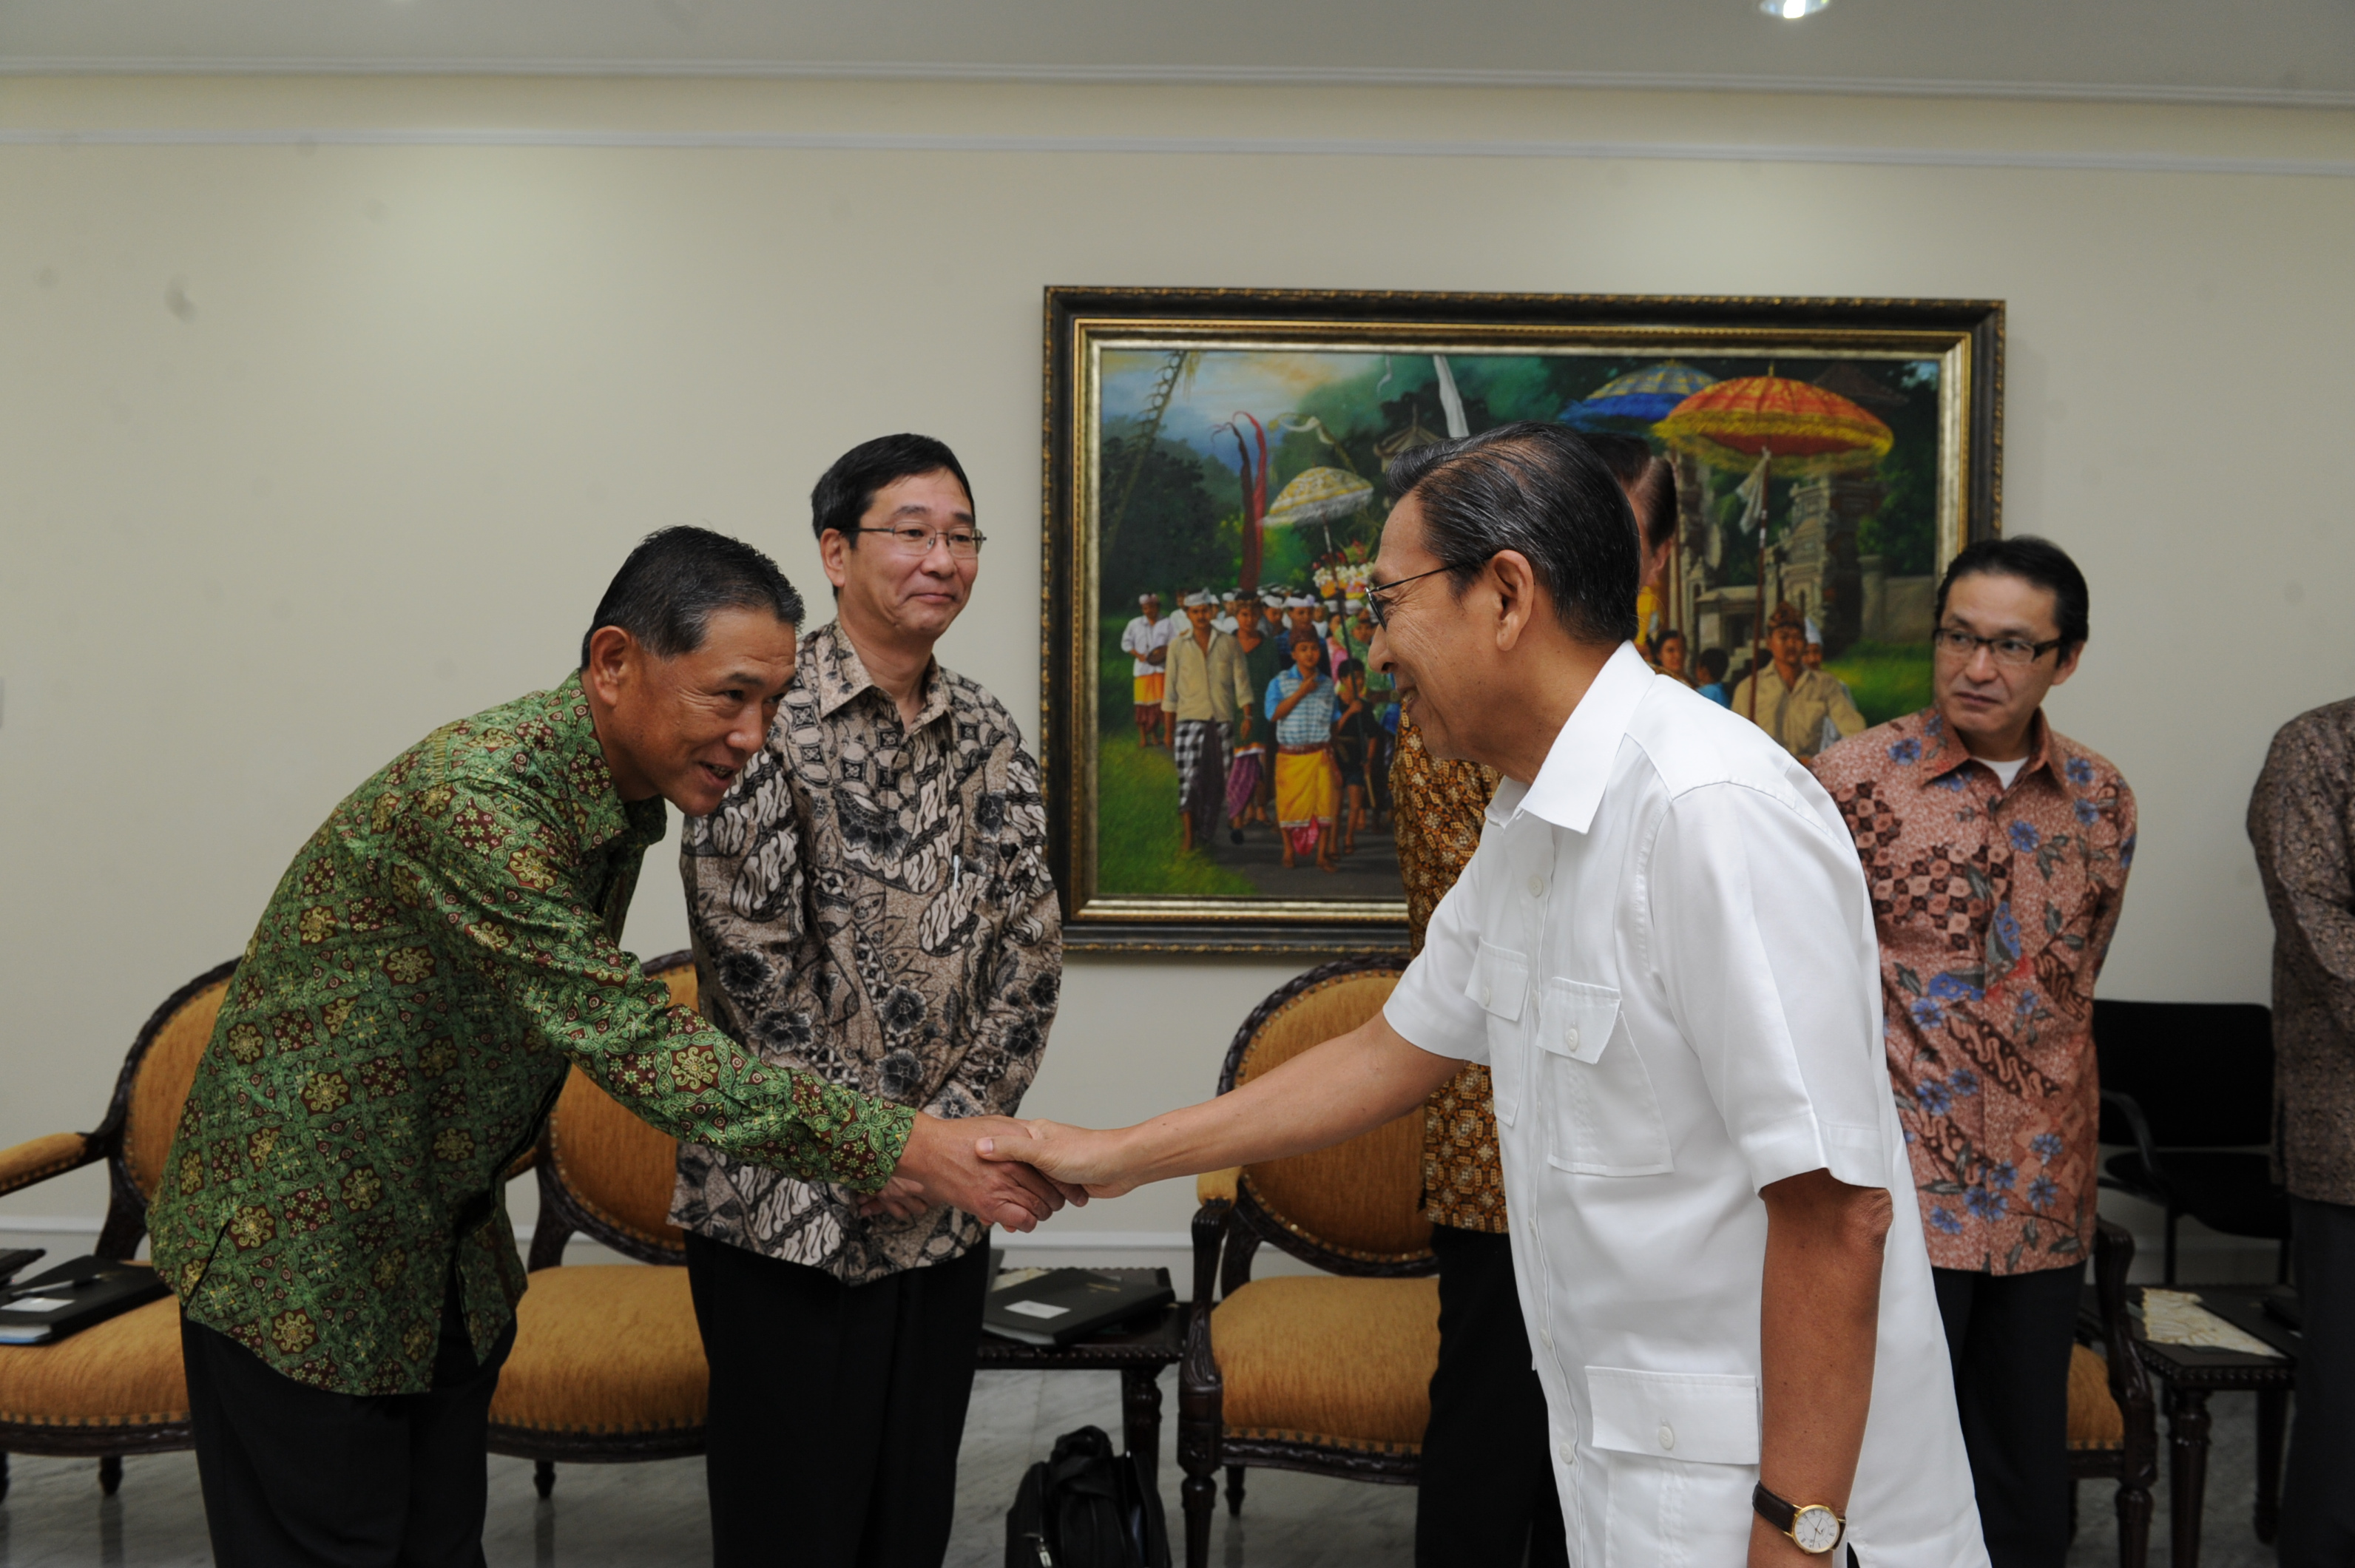 Mr. Itakura (President Director of PT. Marubeni Indonesia) visited the Vice President of Republic of Indonesia